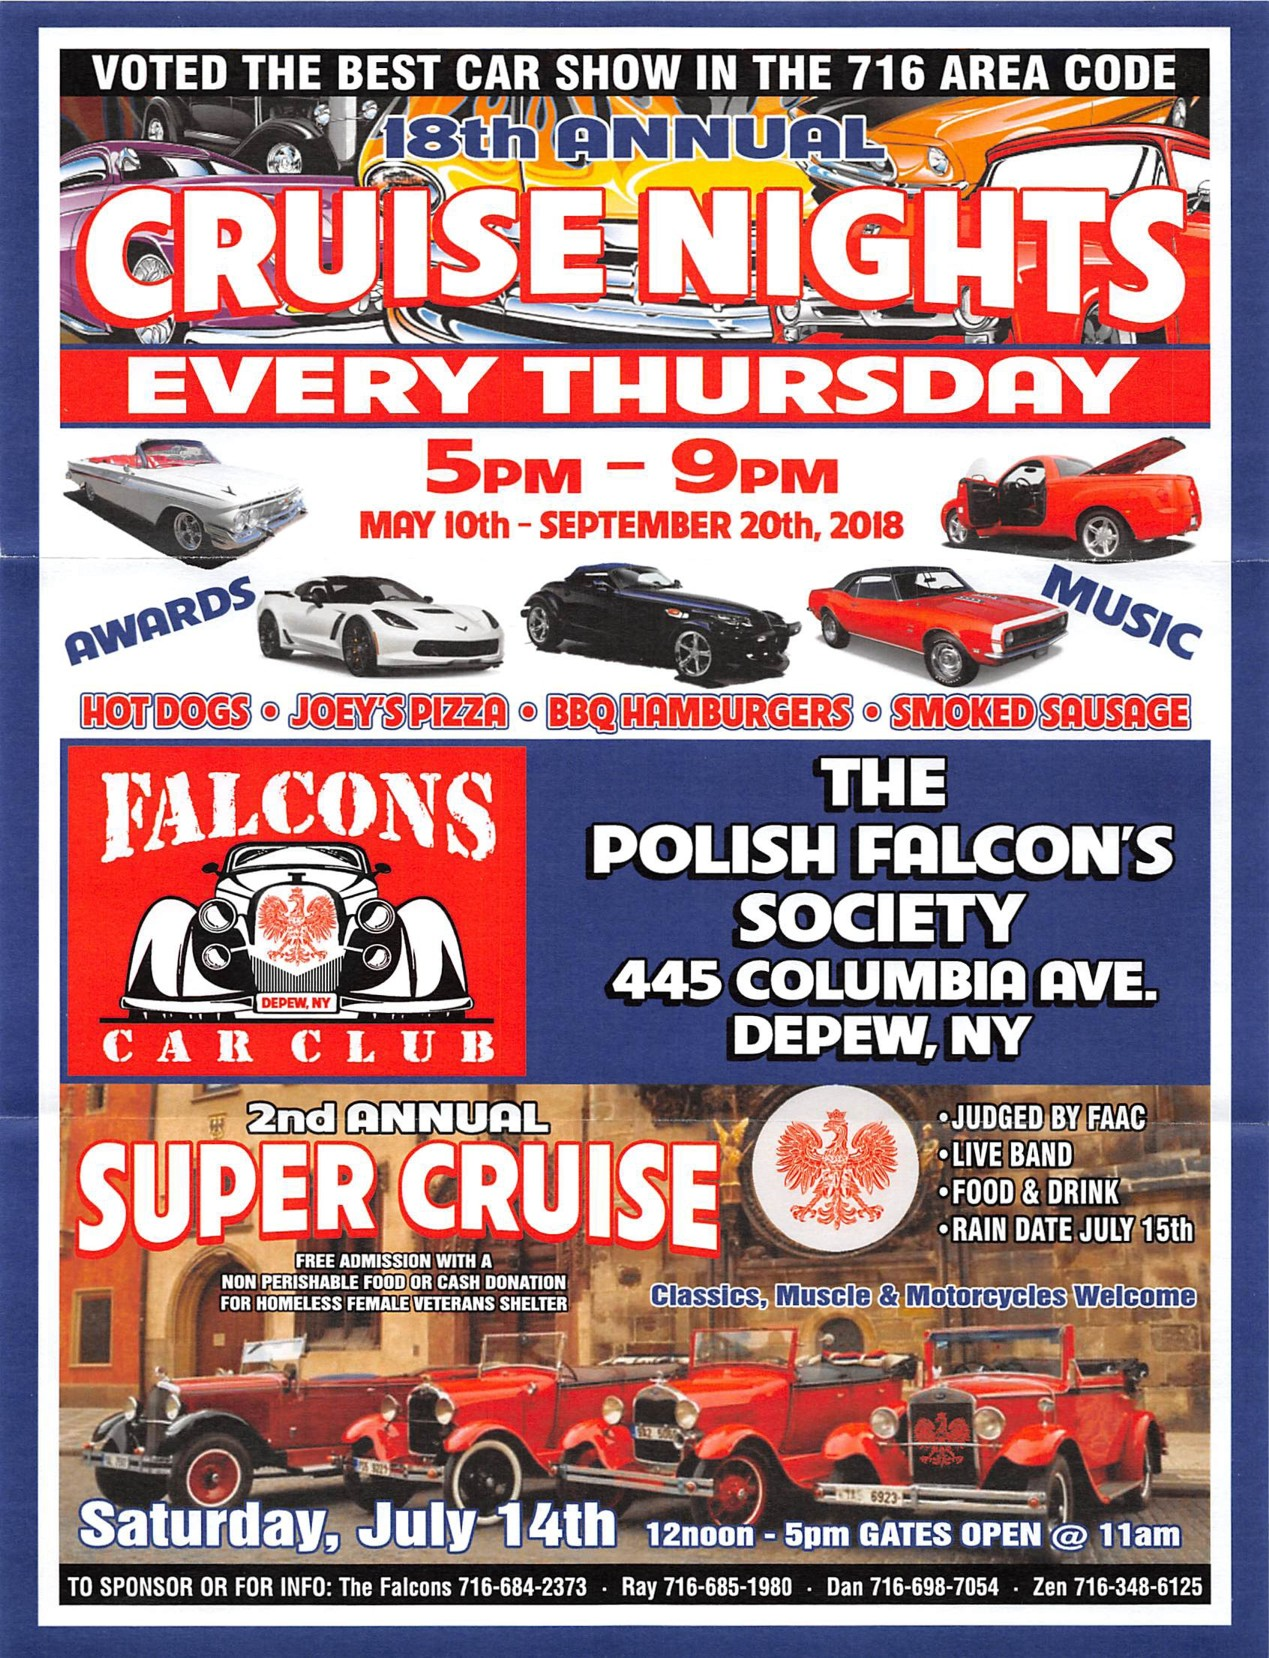 Polish Falcon's Society 18th Annual Cruise Night 2018 @ The Polish Falcon's Society | Depew | New York | United States